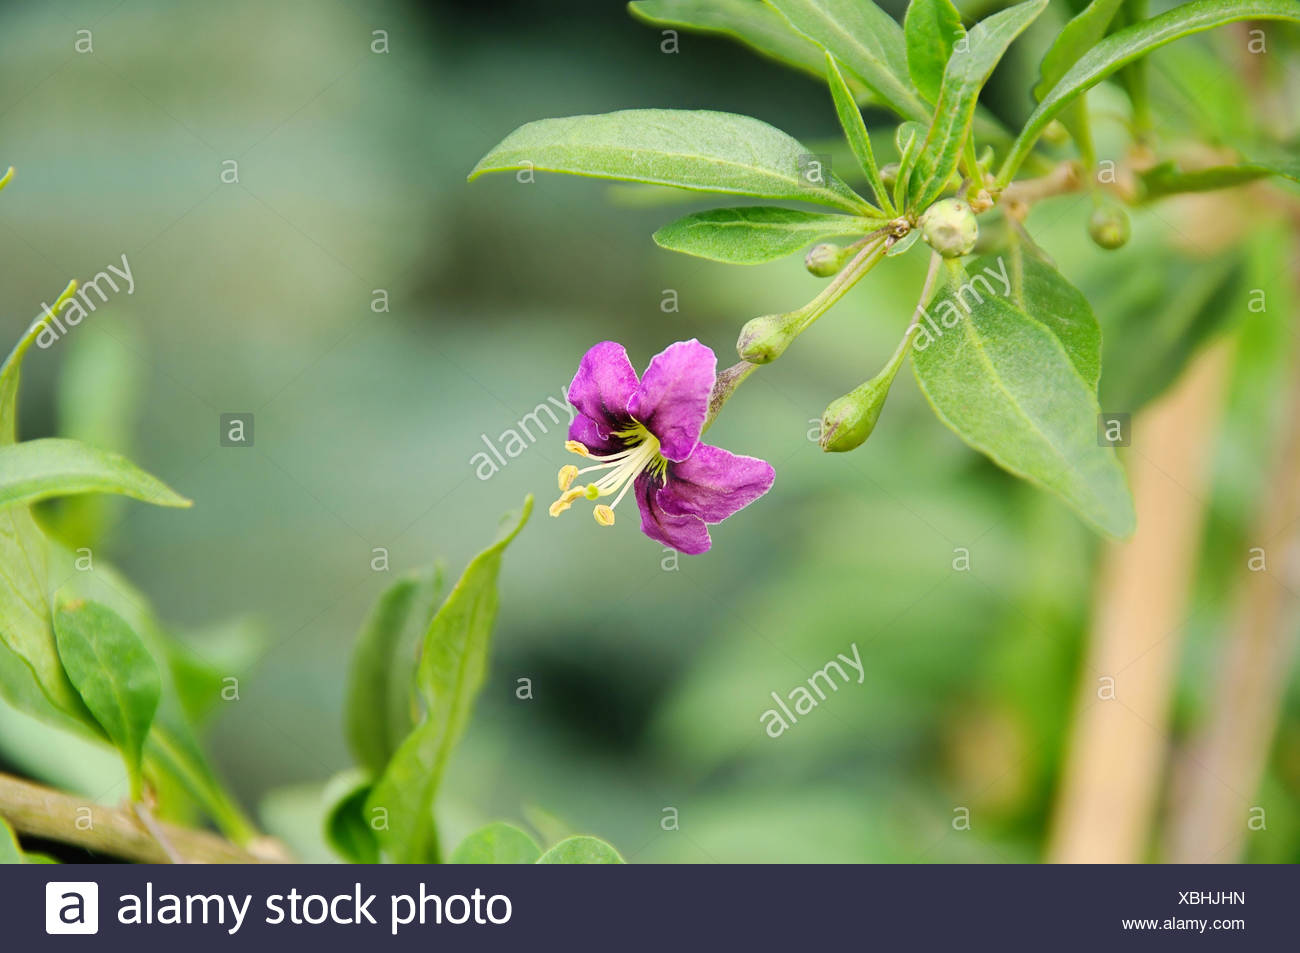 Goji Bloom Goji Berry Flower 01 Stock Photo Alamy